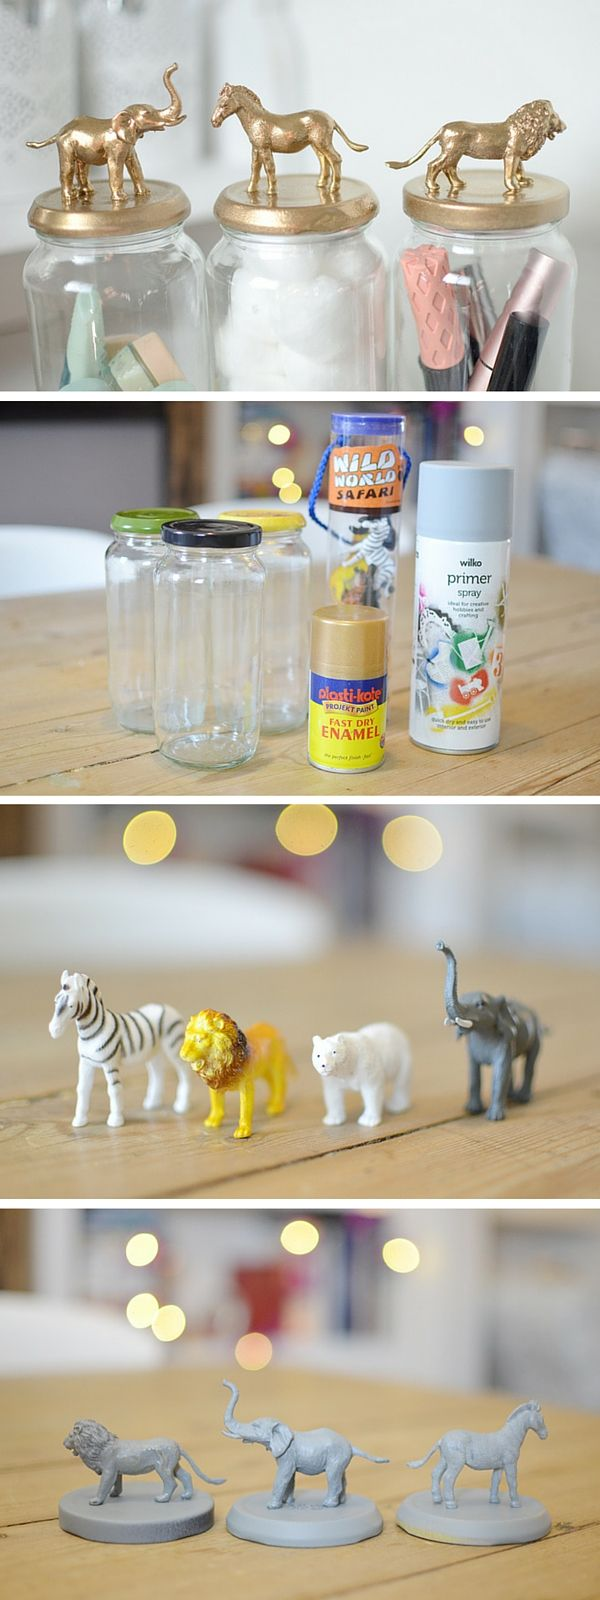 Cool DIYs to Turn Your Home Decor from Plain to Awesome  Basteln